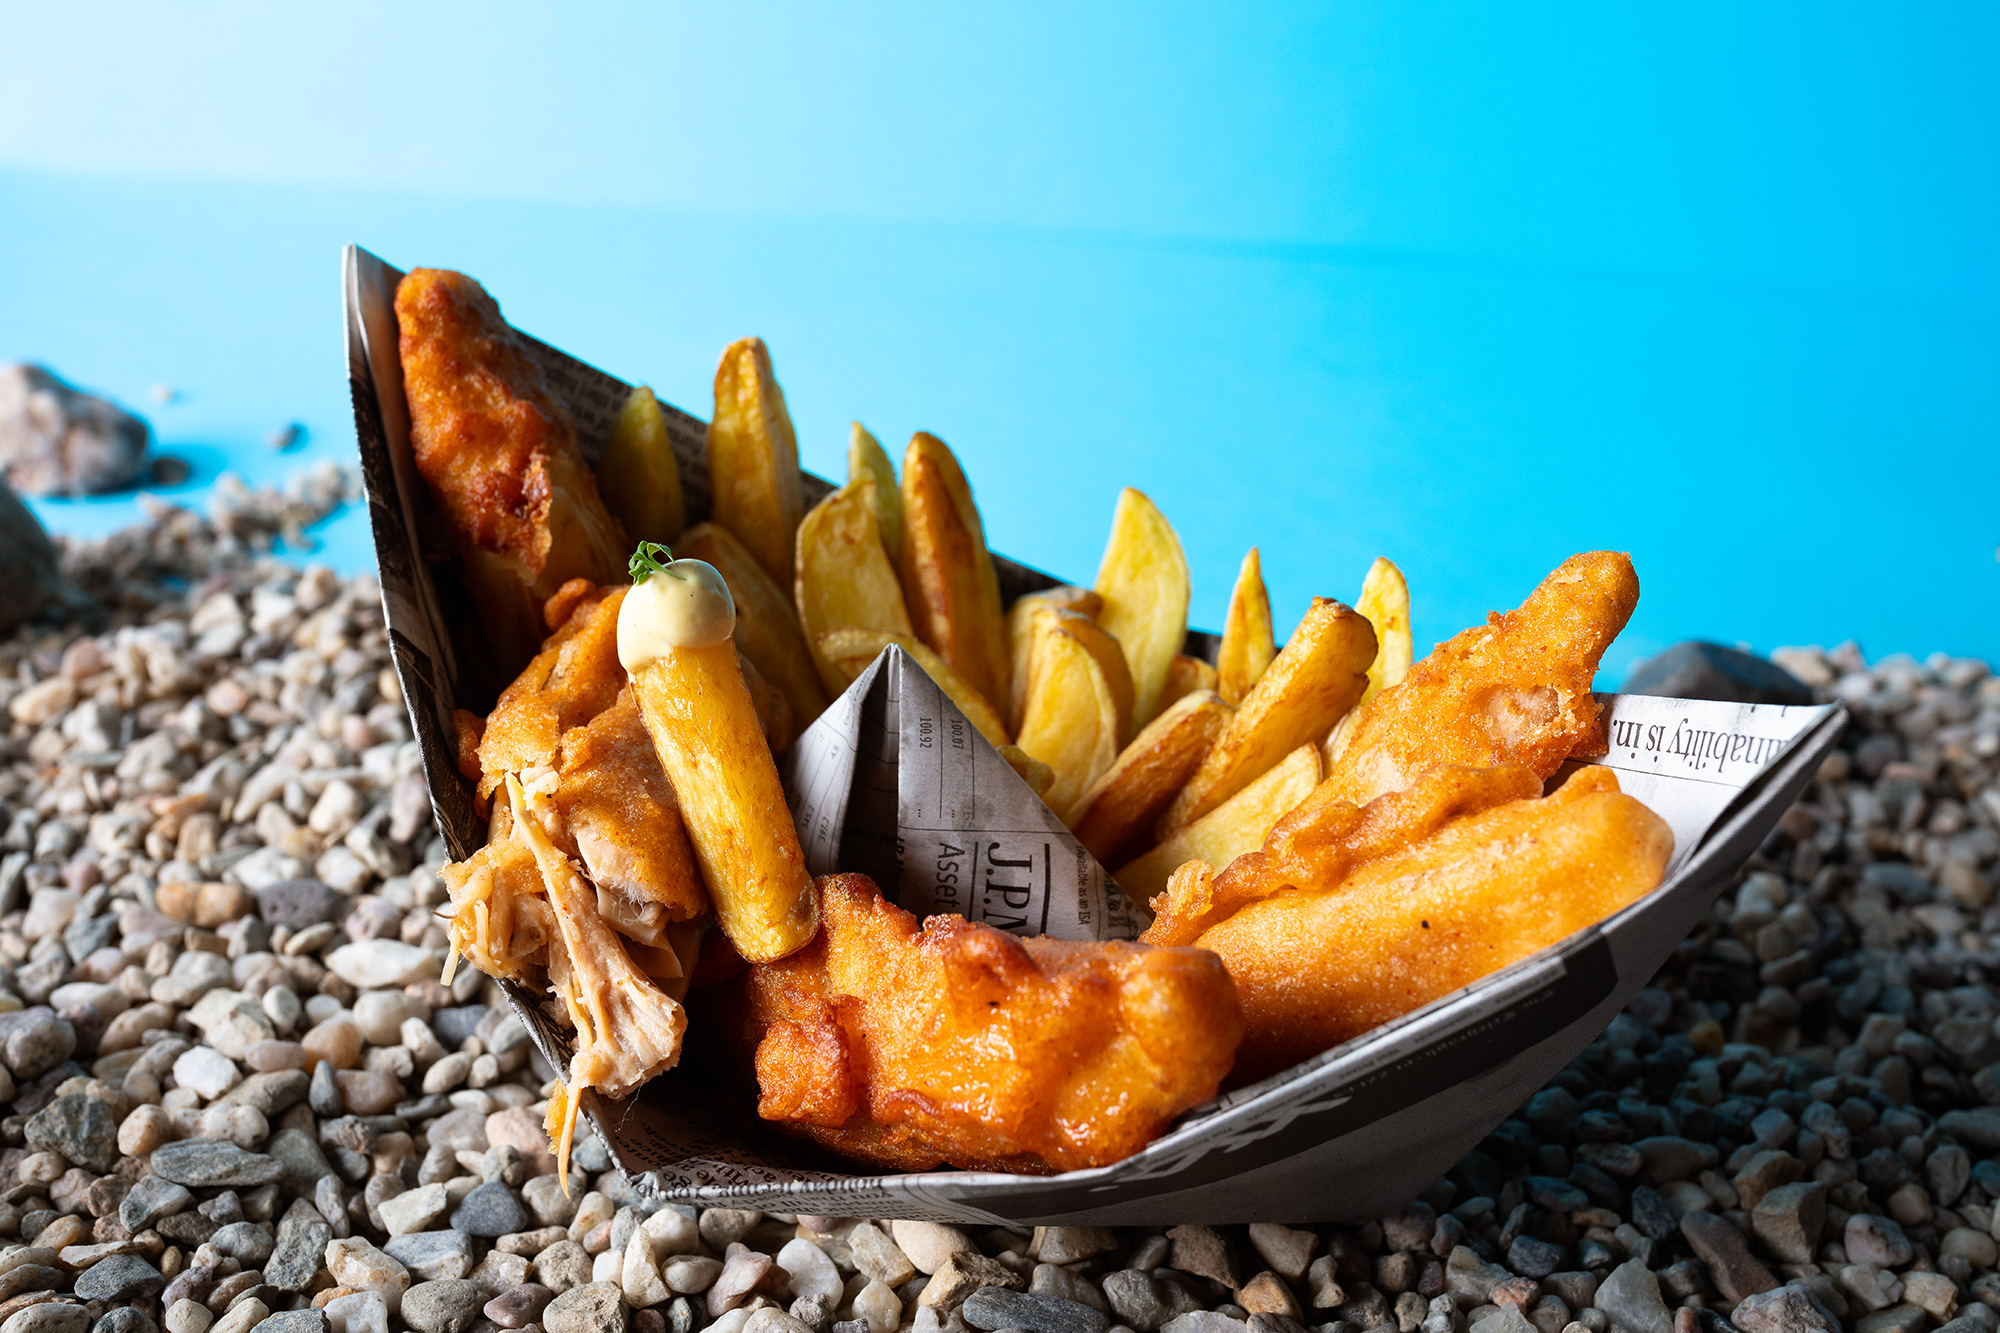 Step by step photo recipe of vegan fish and chips. Ingredients: Banana blossom, seaweed, potatos, salt, beer,black pepper, paprika powder, dill, flour